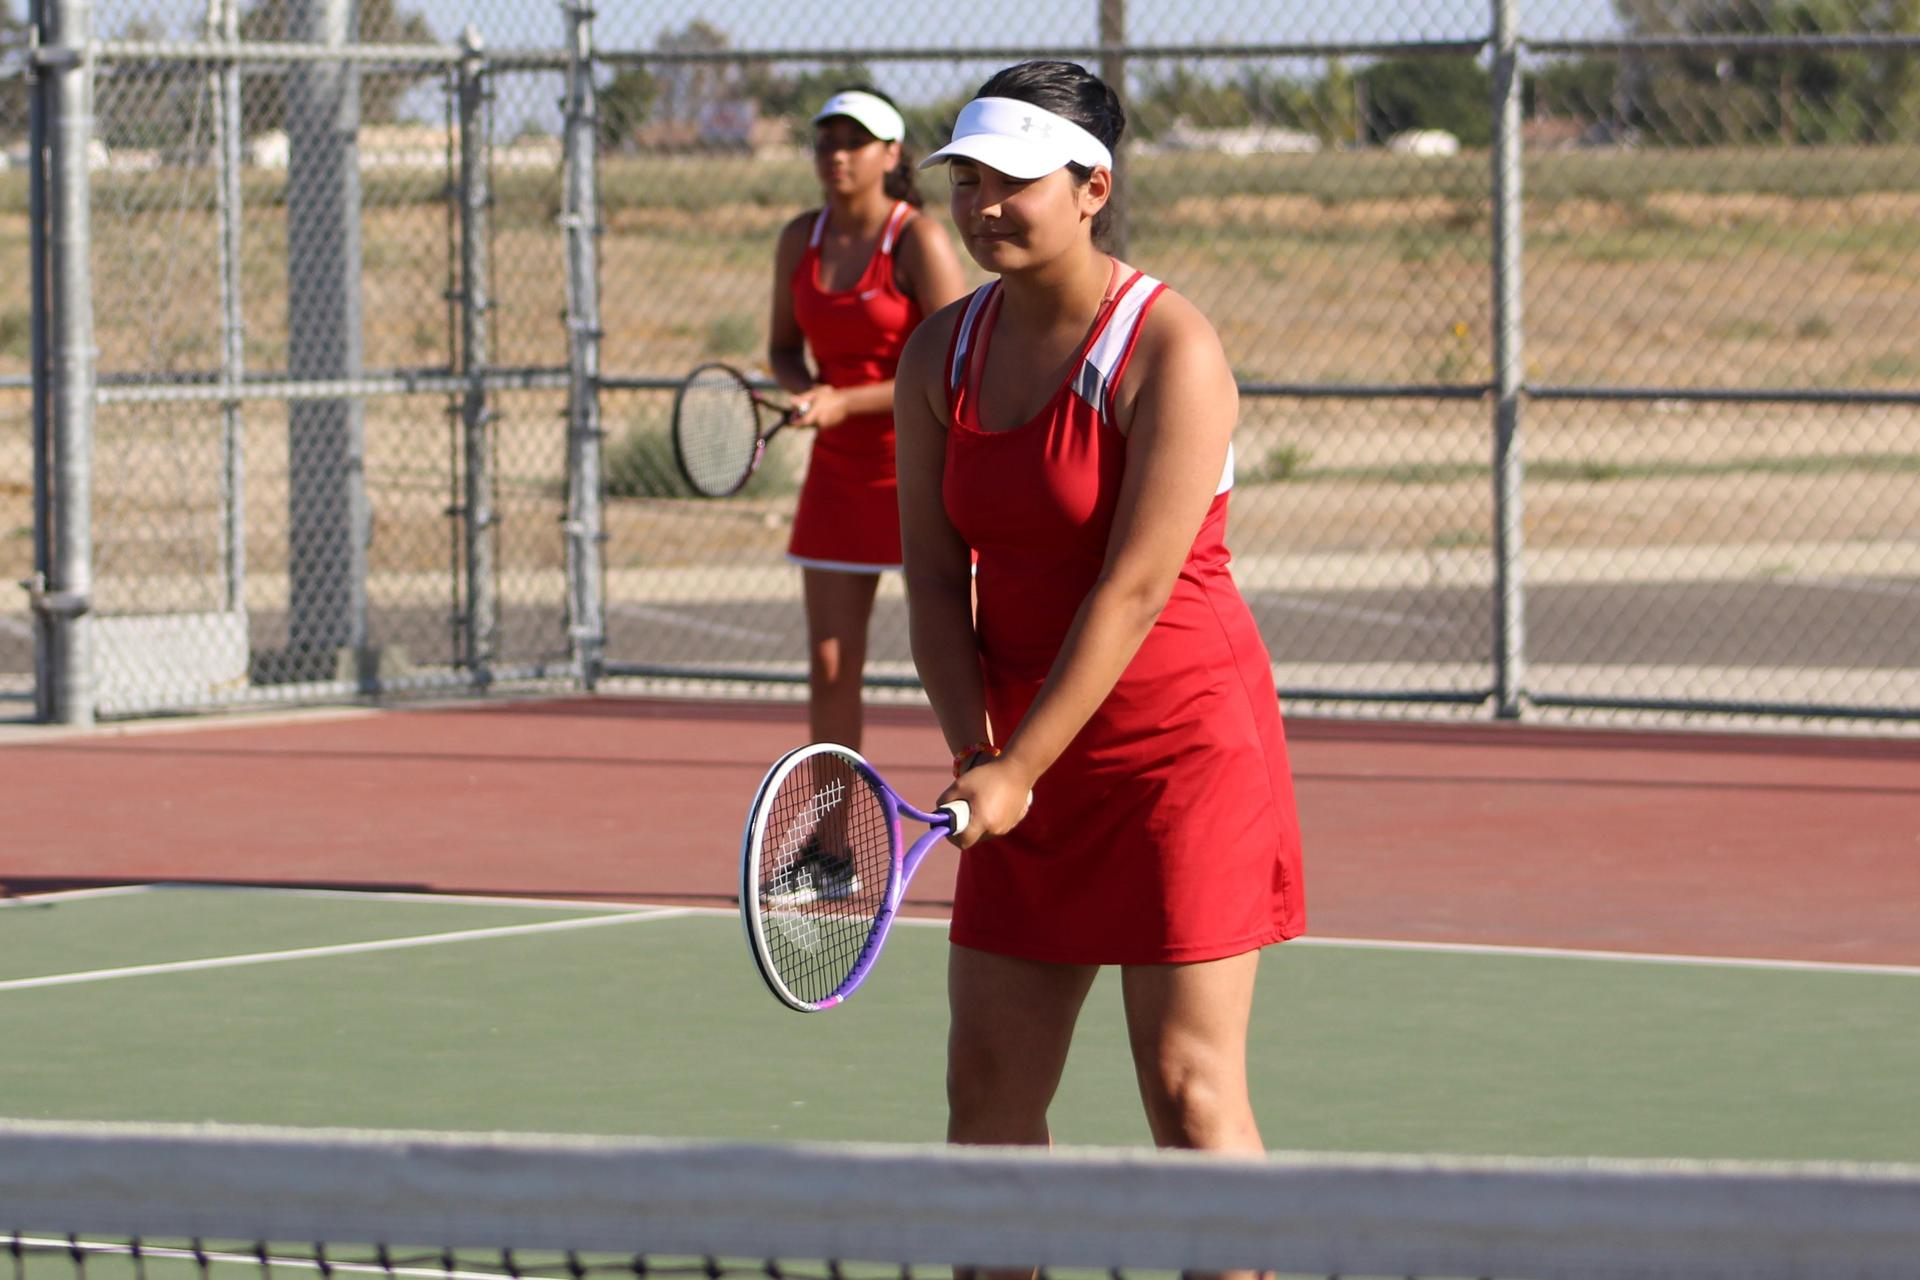 Girls playing tennis